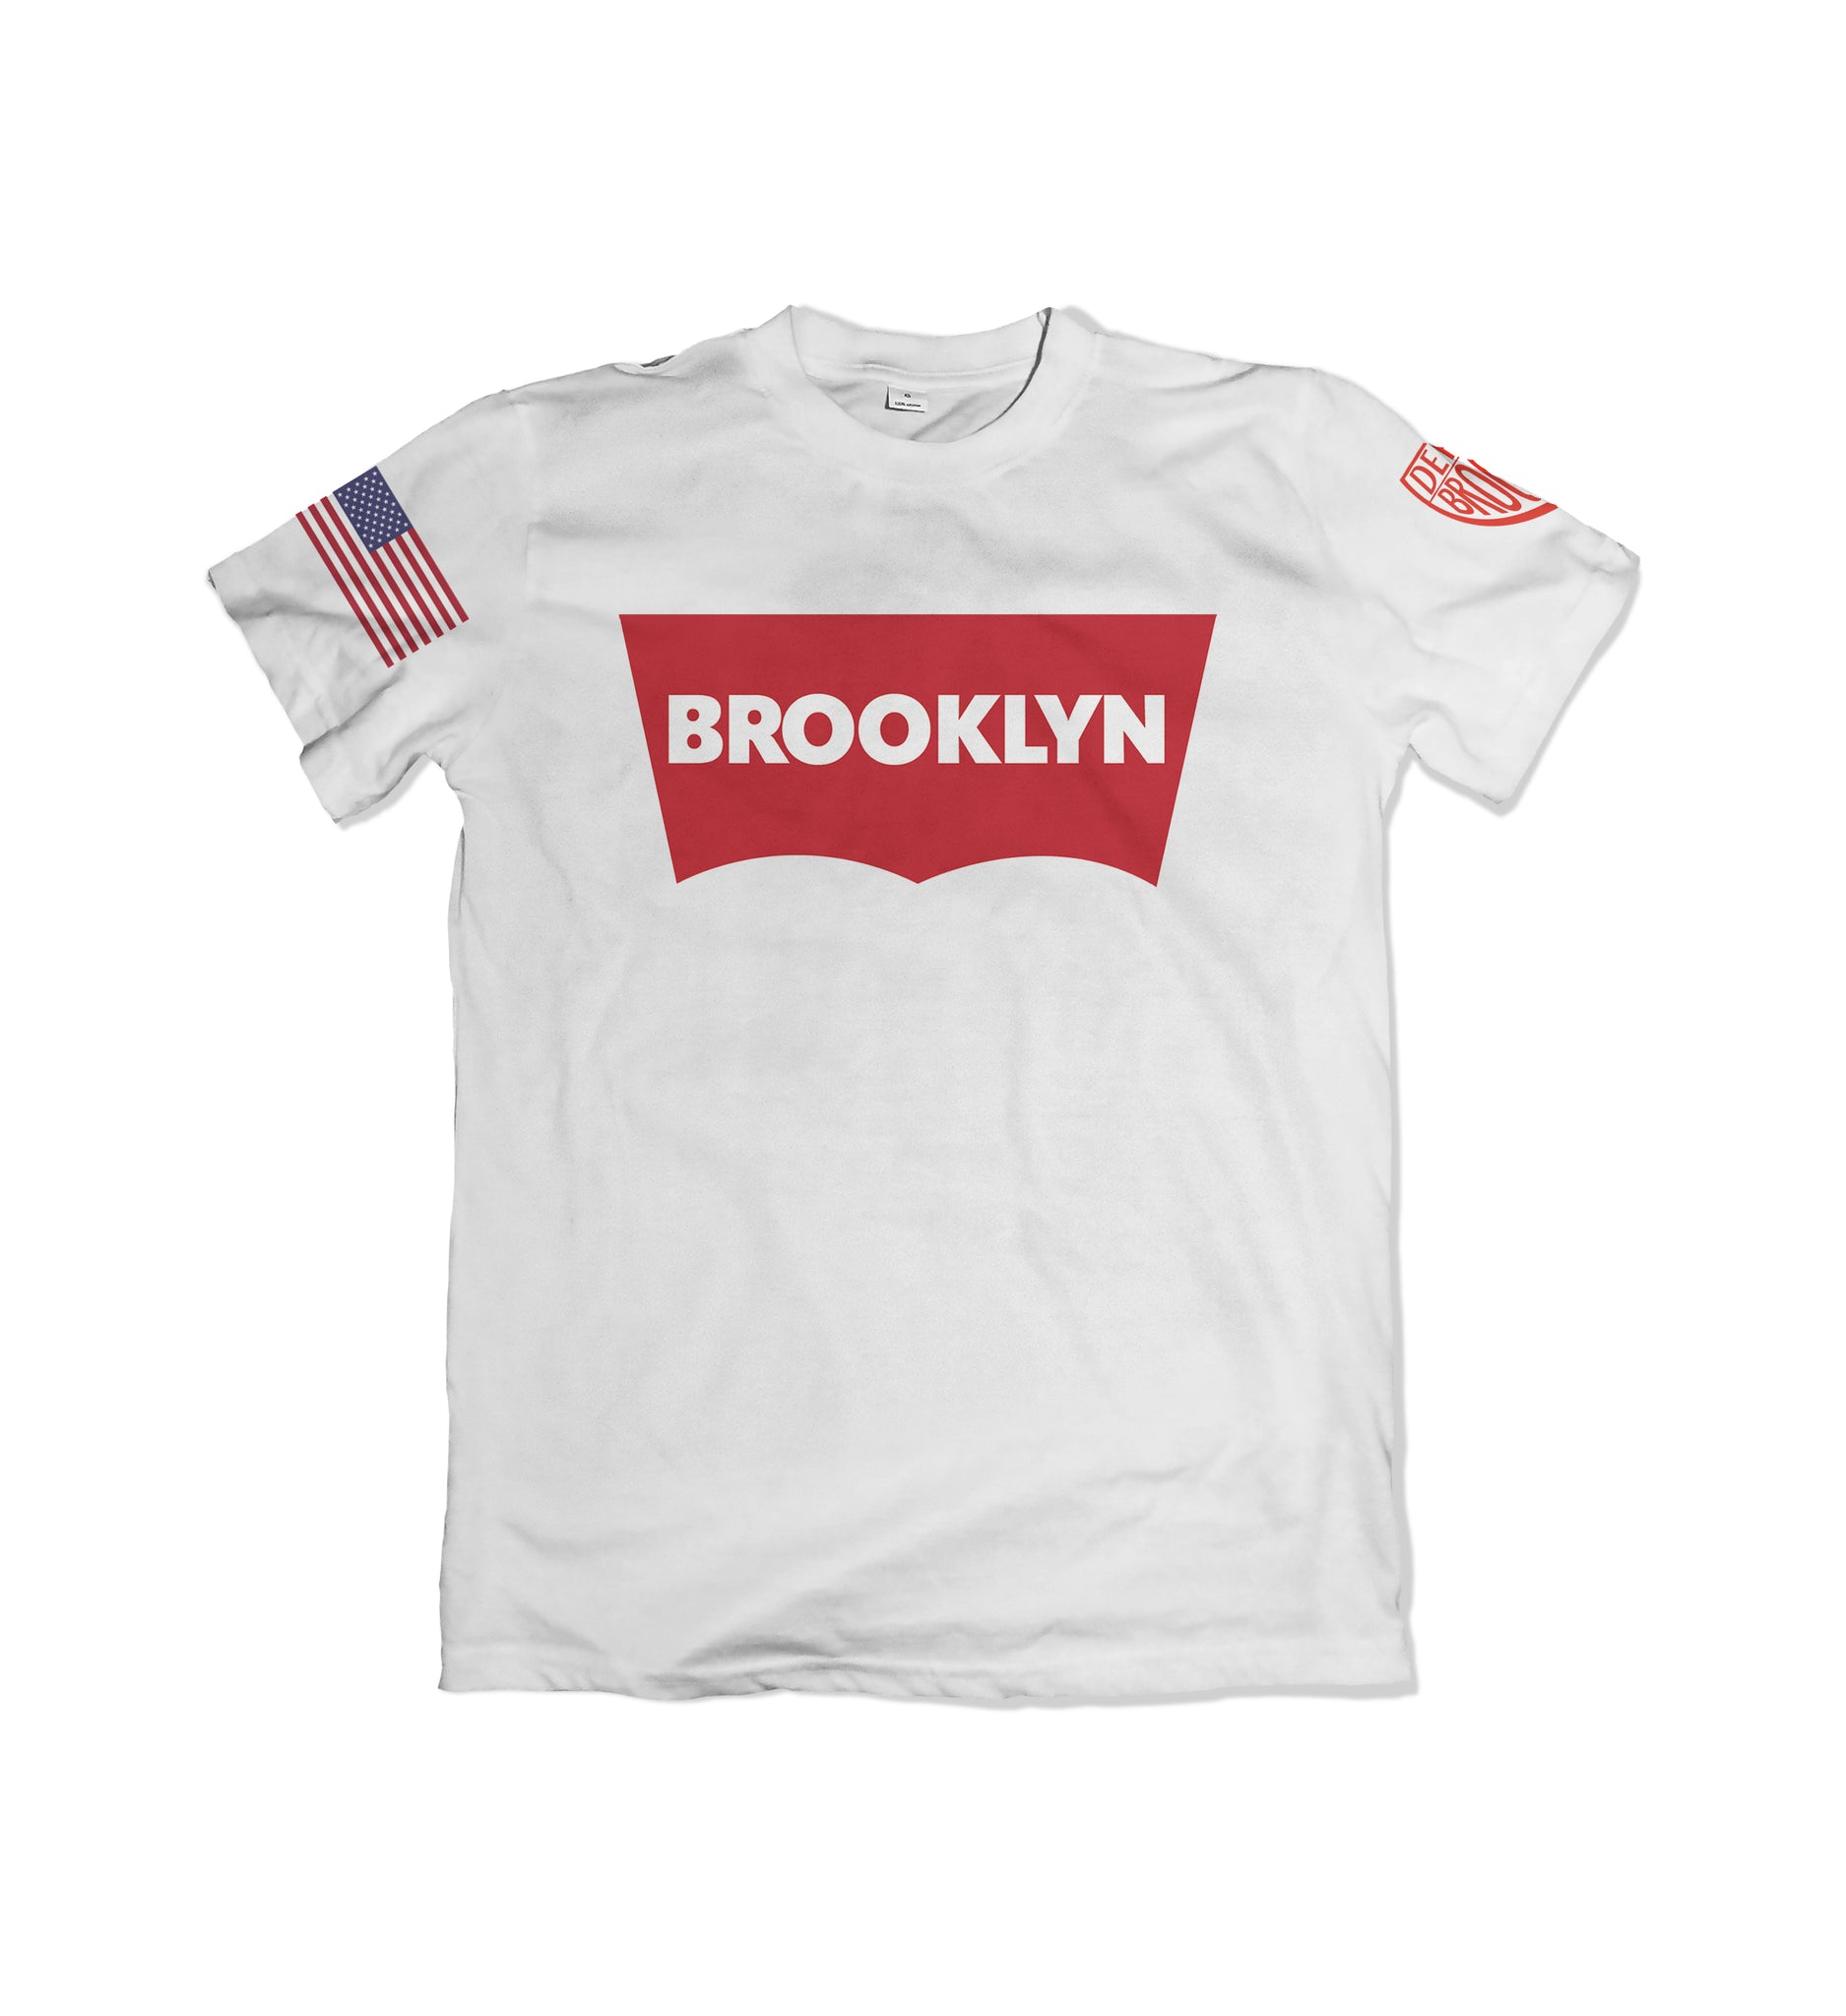 Brooklyn Graphic Tee